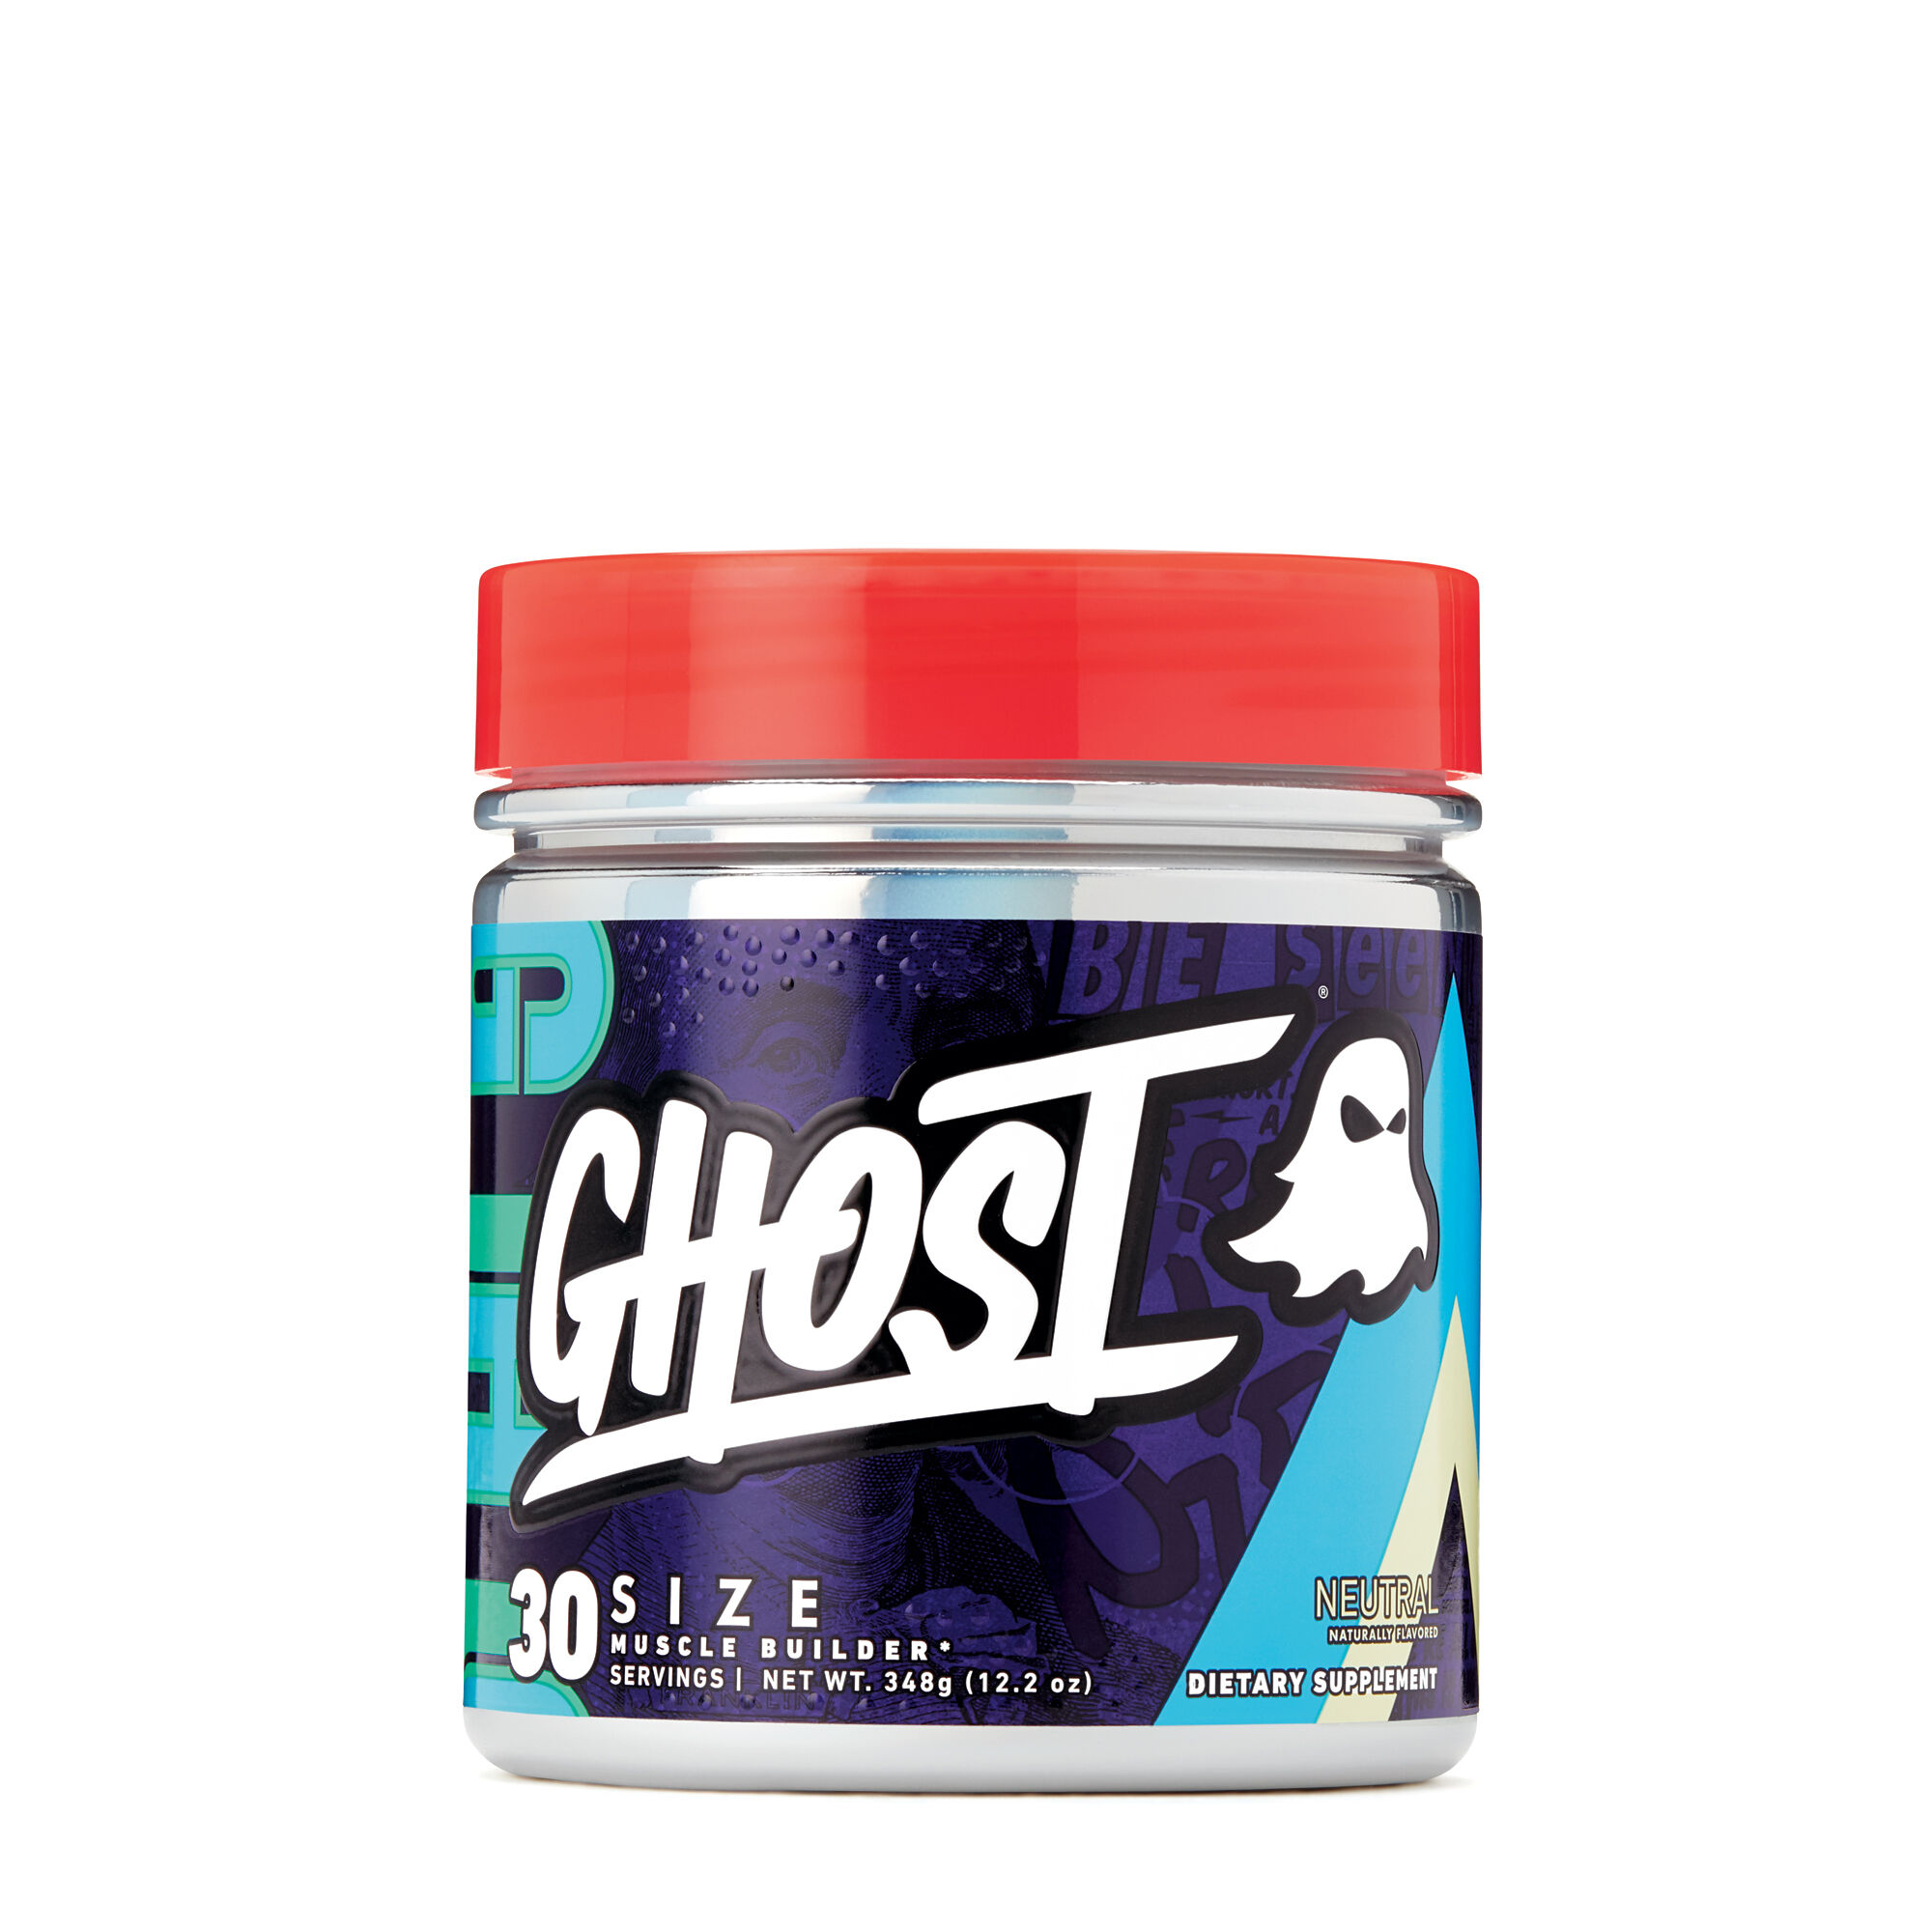 Ghost LEGEND /& Ghost SIZE Stack Pre Workout Creatine Fitness Weight Loss